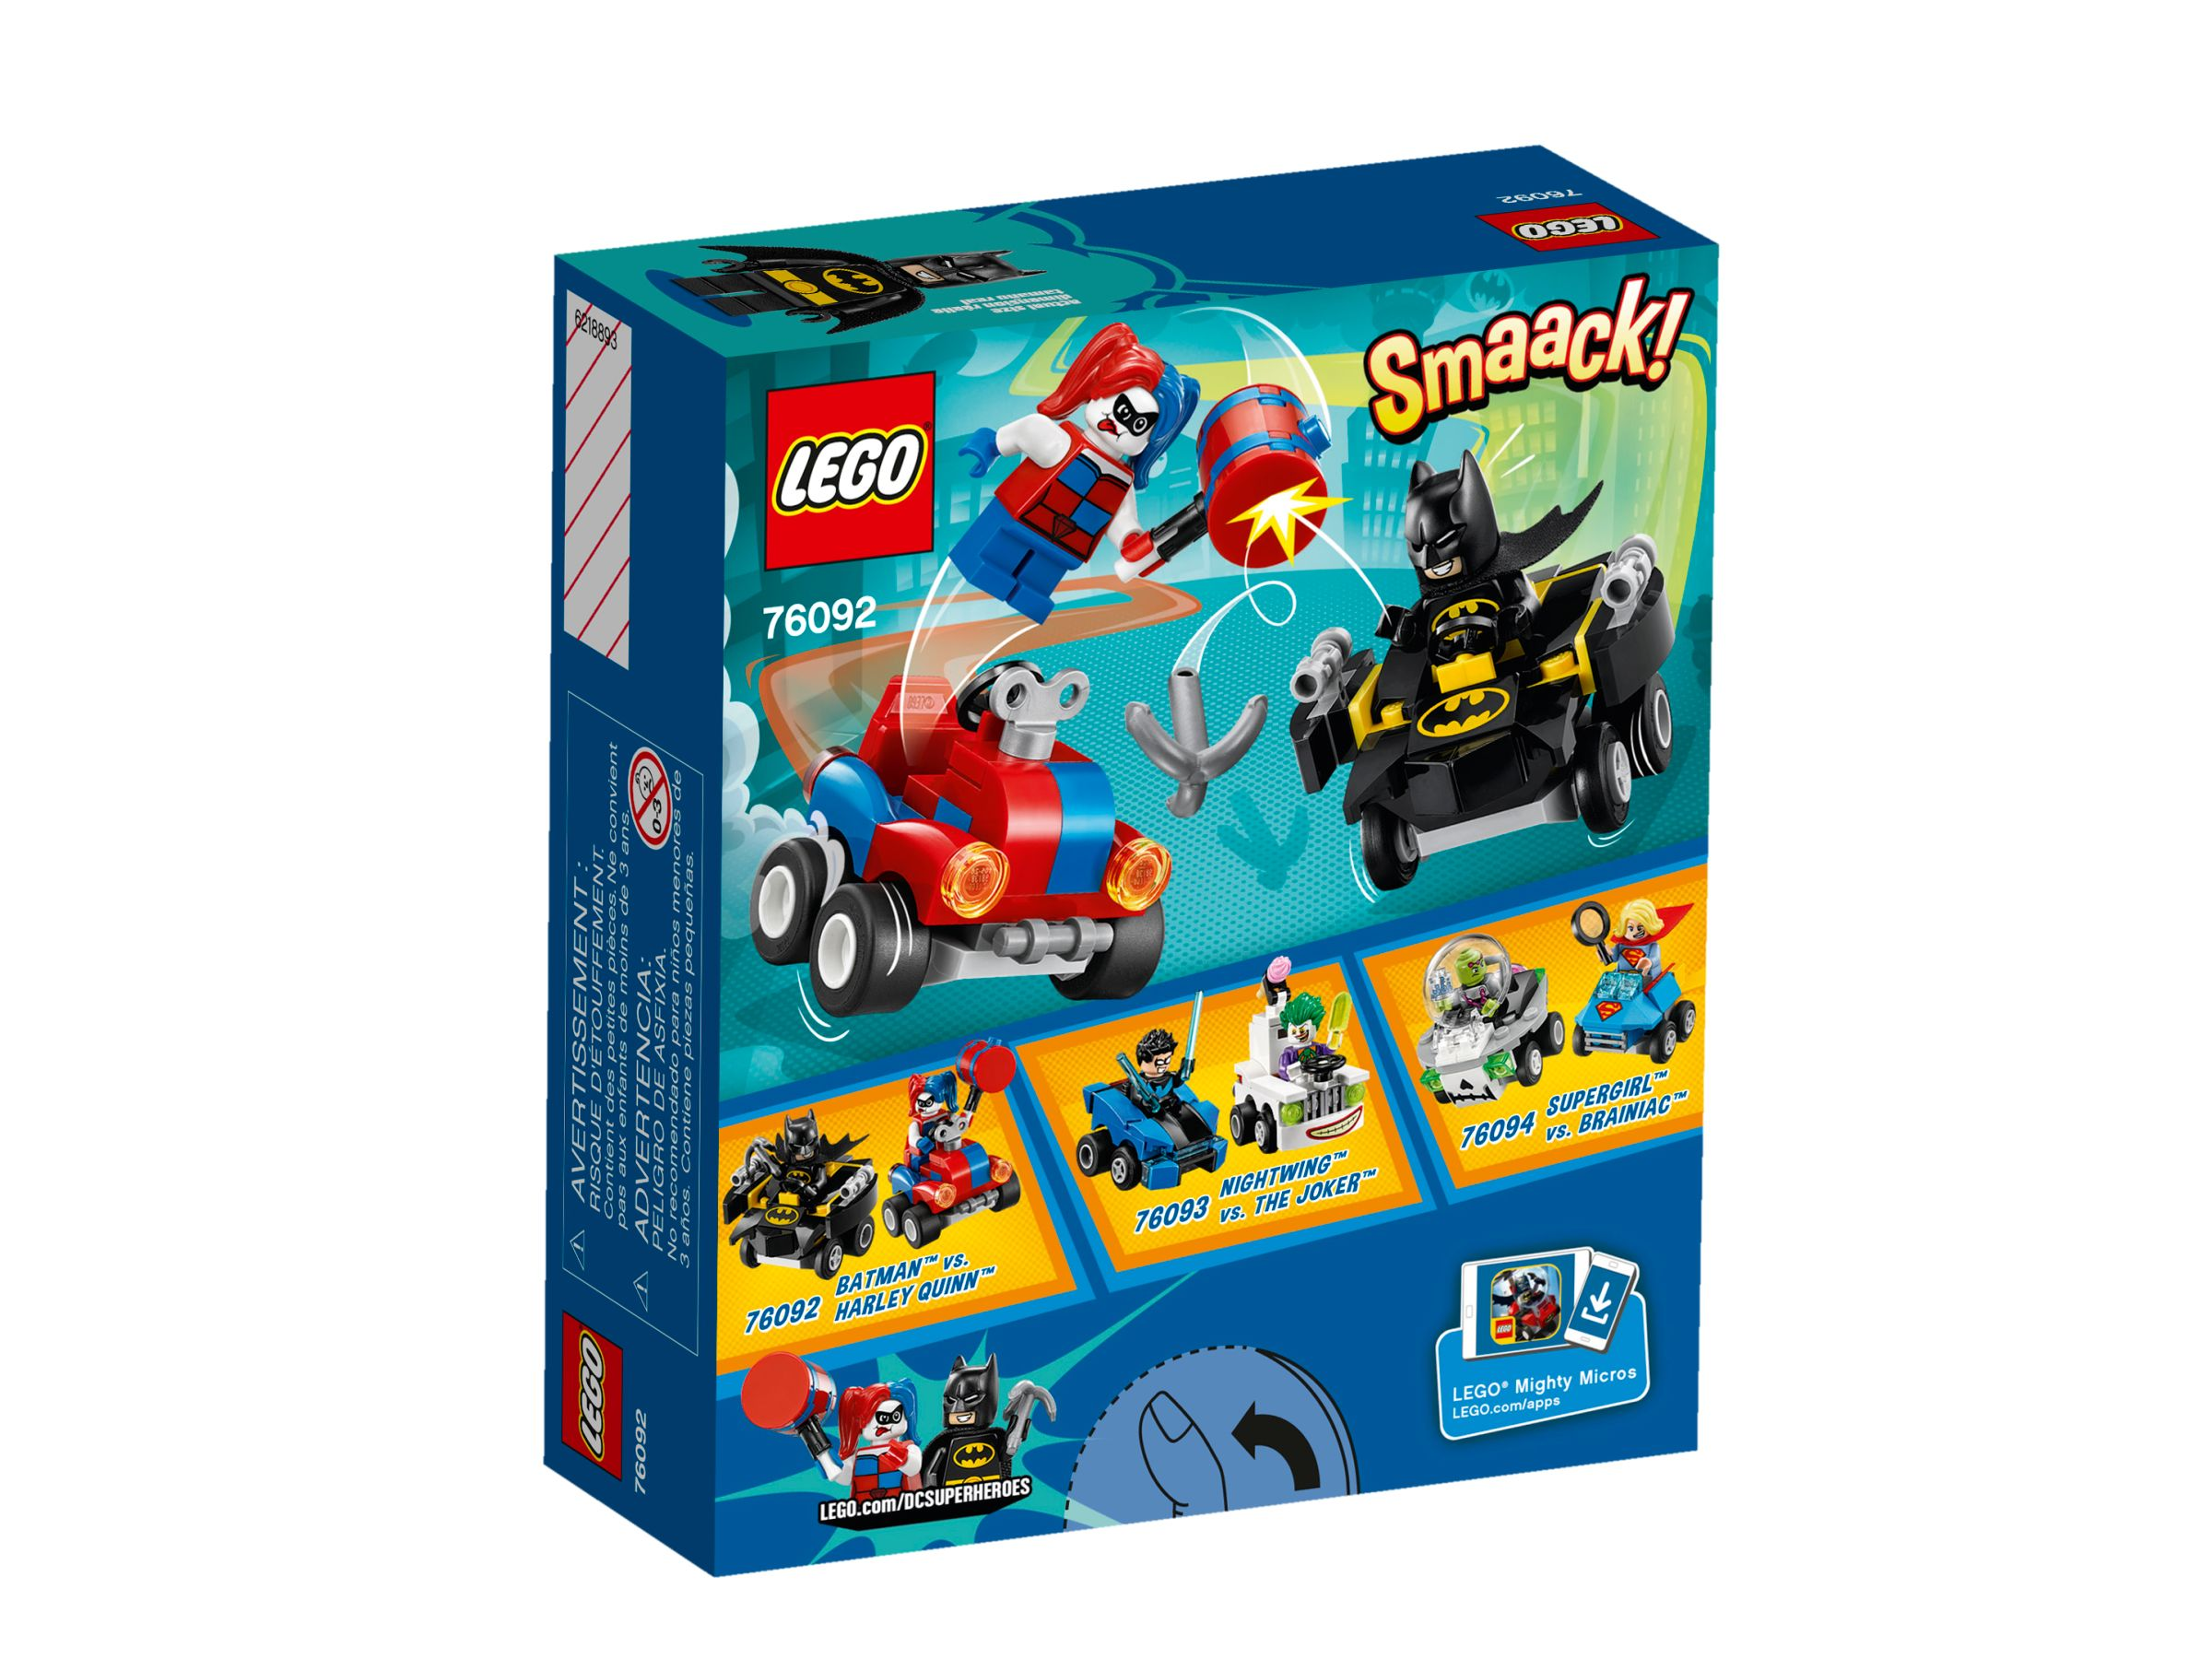 LEGO Super Heroes 76092 Mighty Micros: Batman vs. Harley Quinn LEGO_76092_alt2.jpg